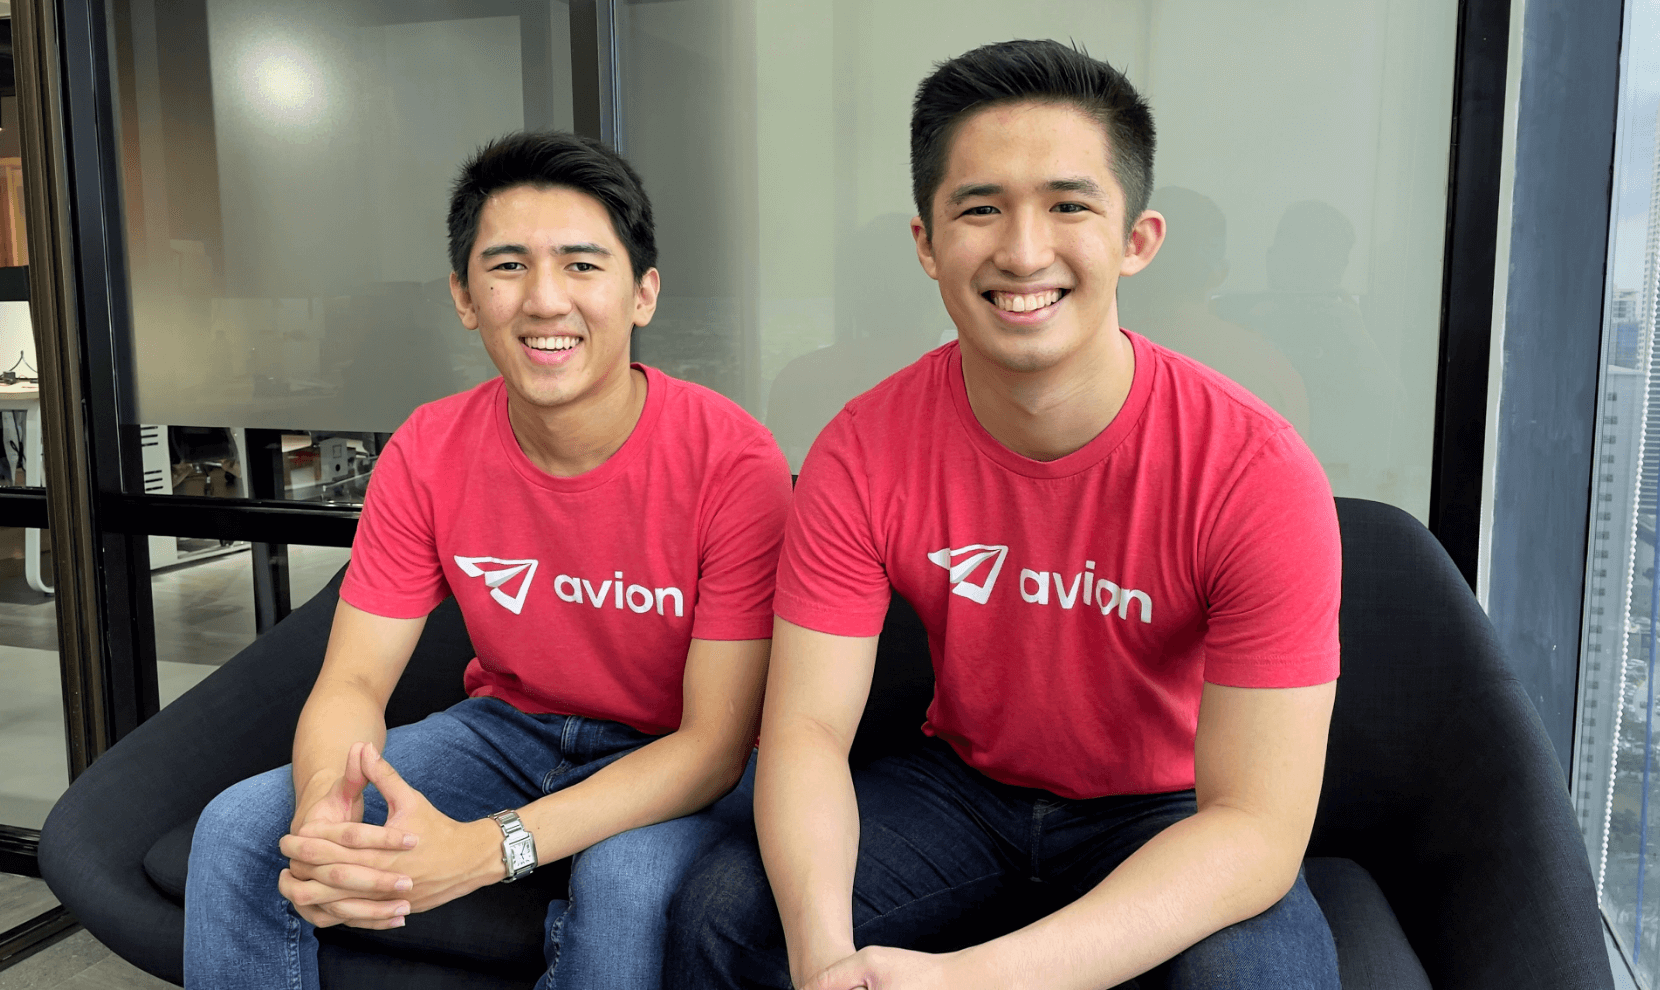 avion-school-a-programming-school-in-the-philippines-raises-125000-from-y-combinator